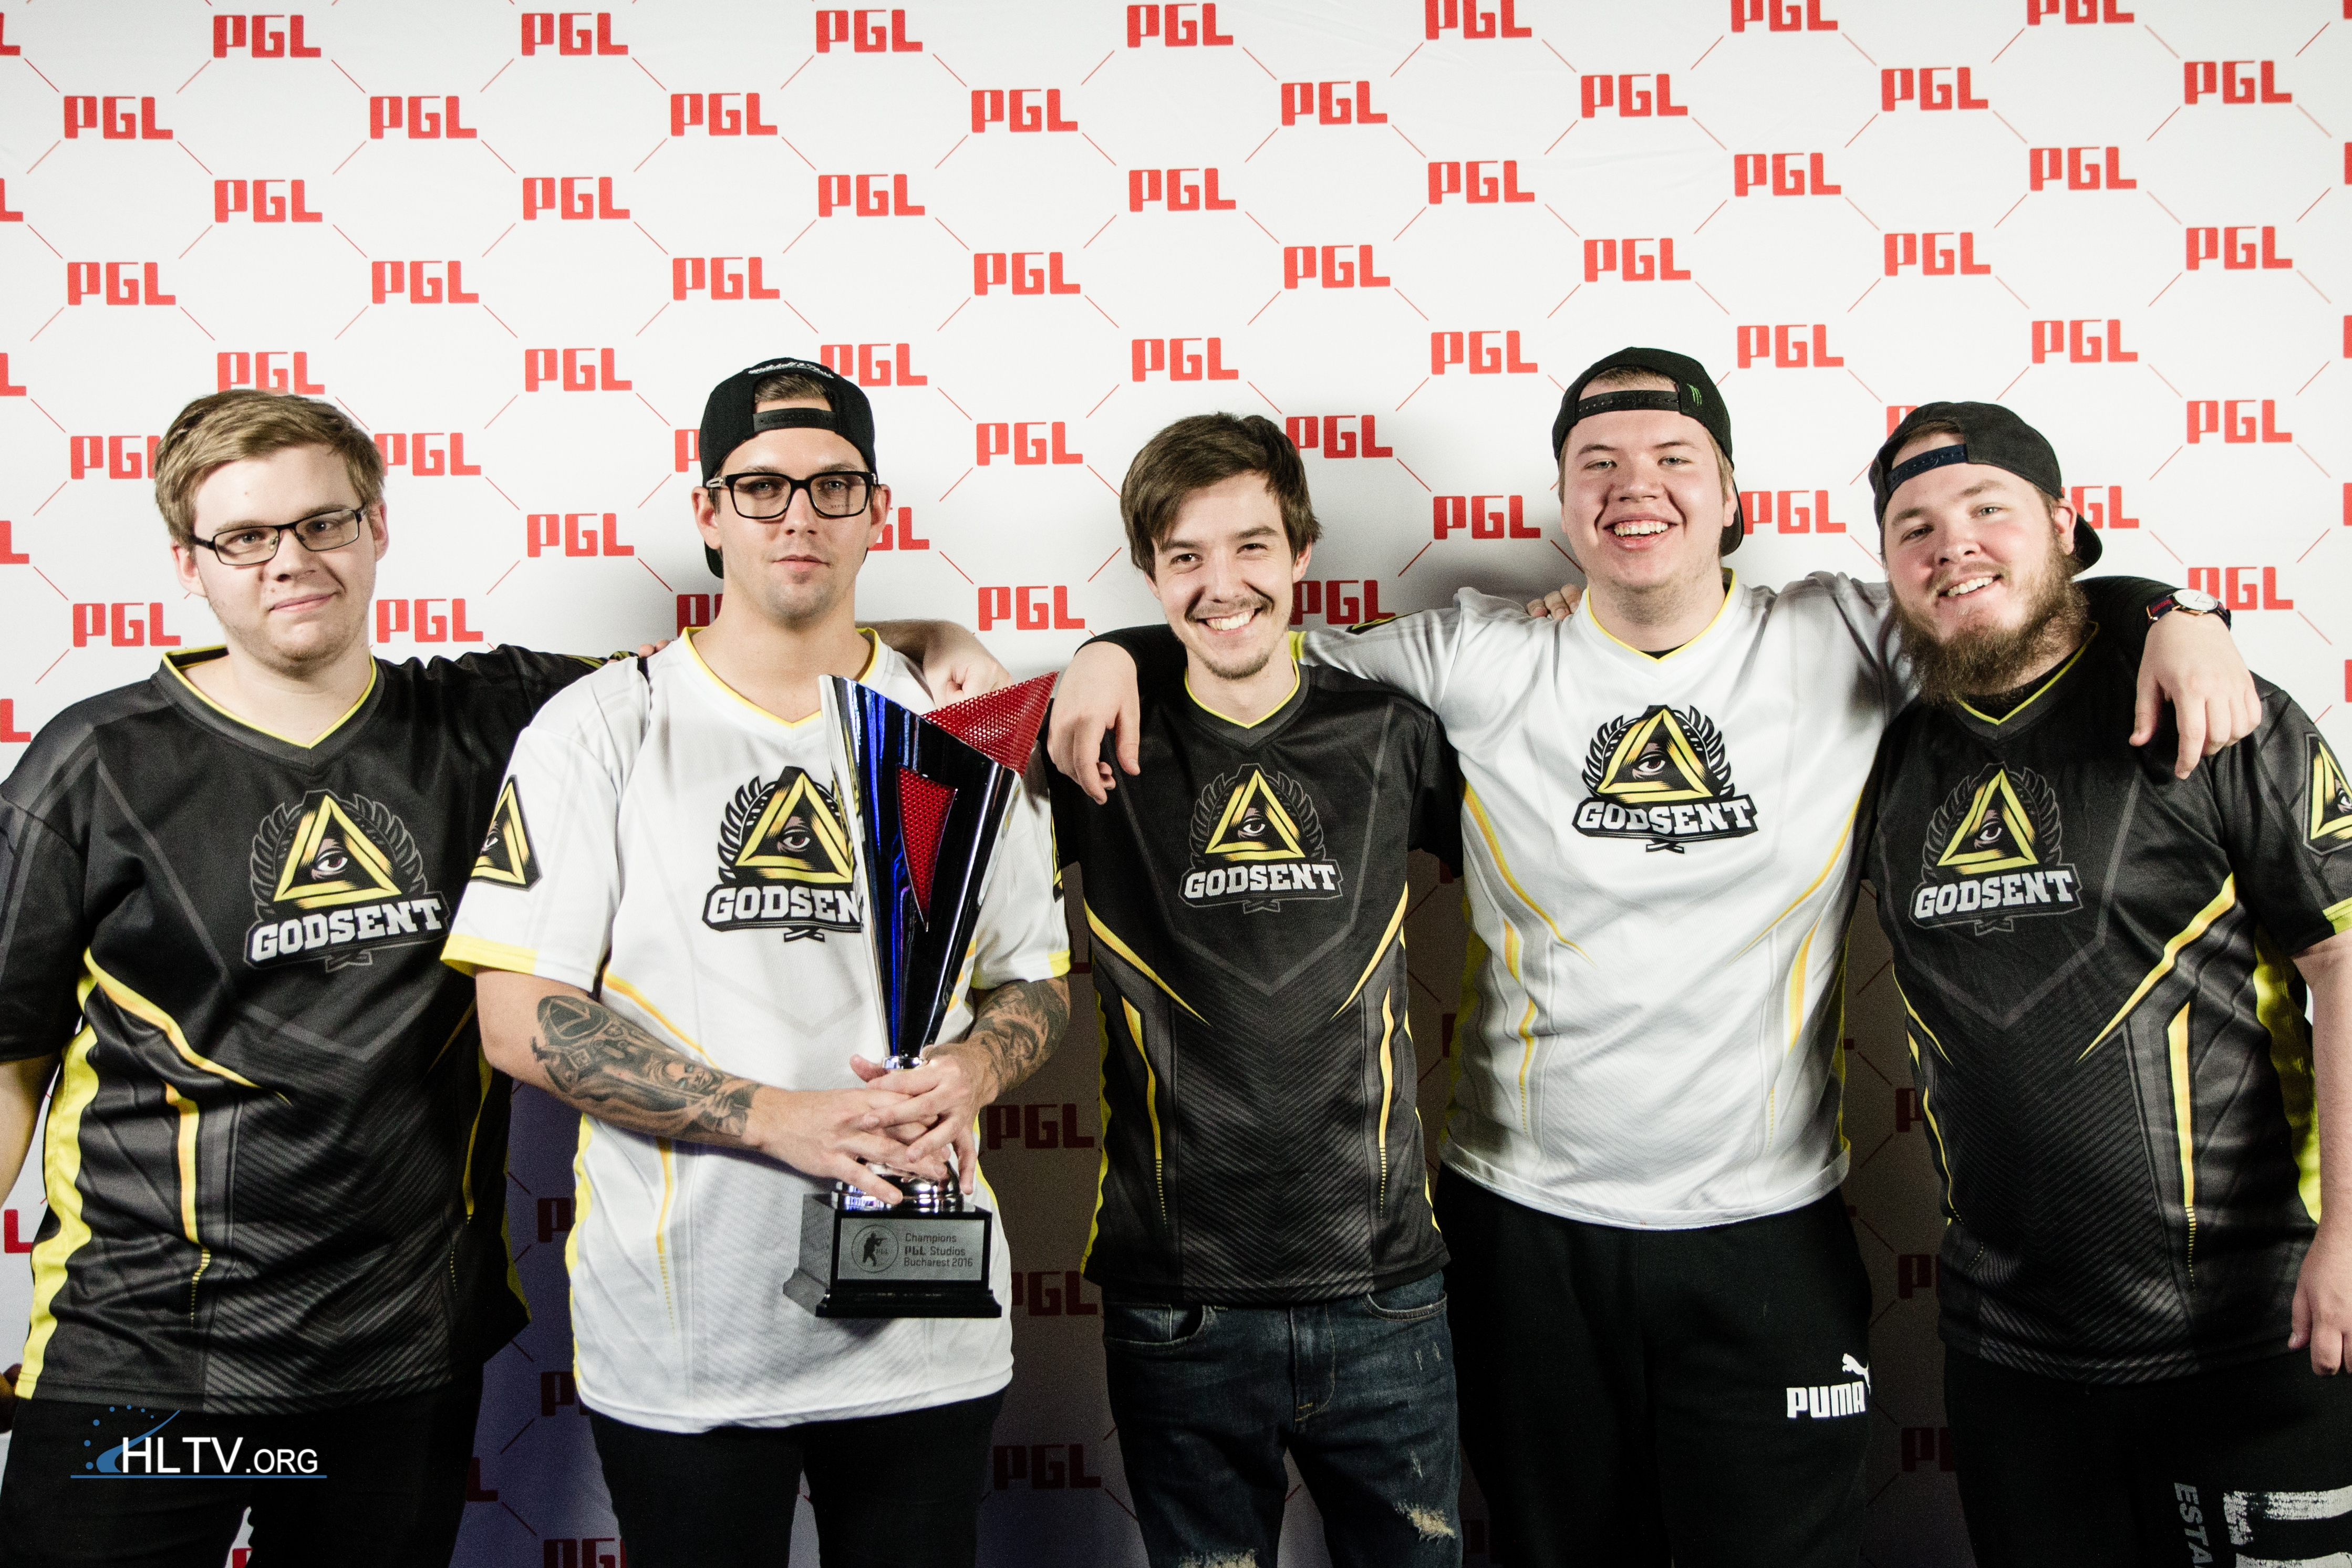 Team GODSENT (Photo by HLTV.org)